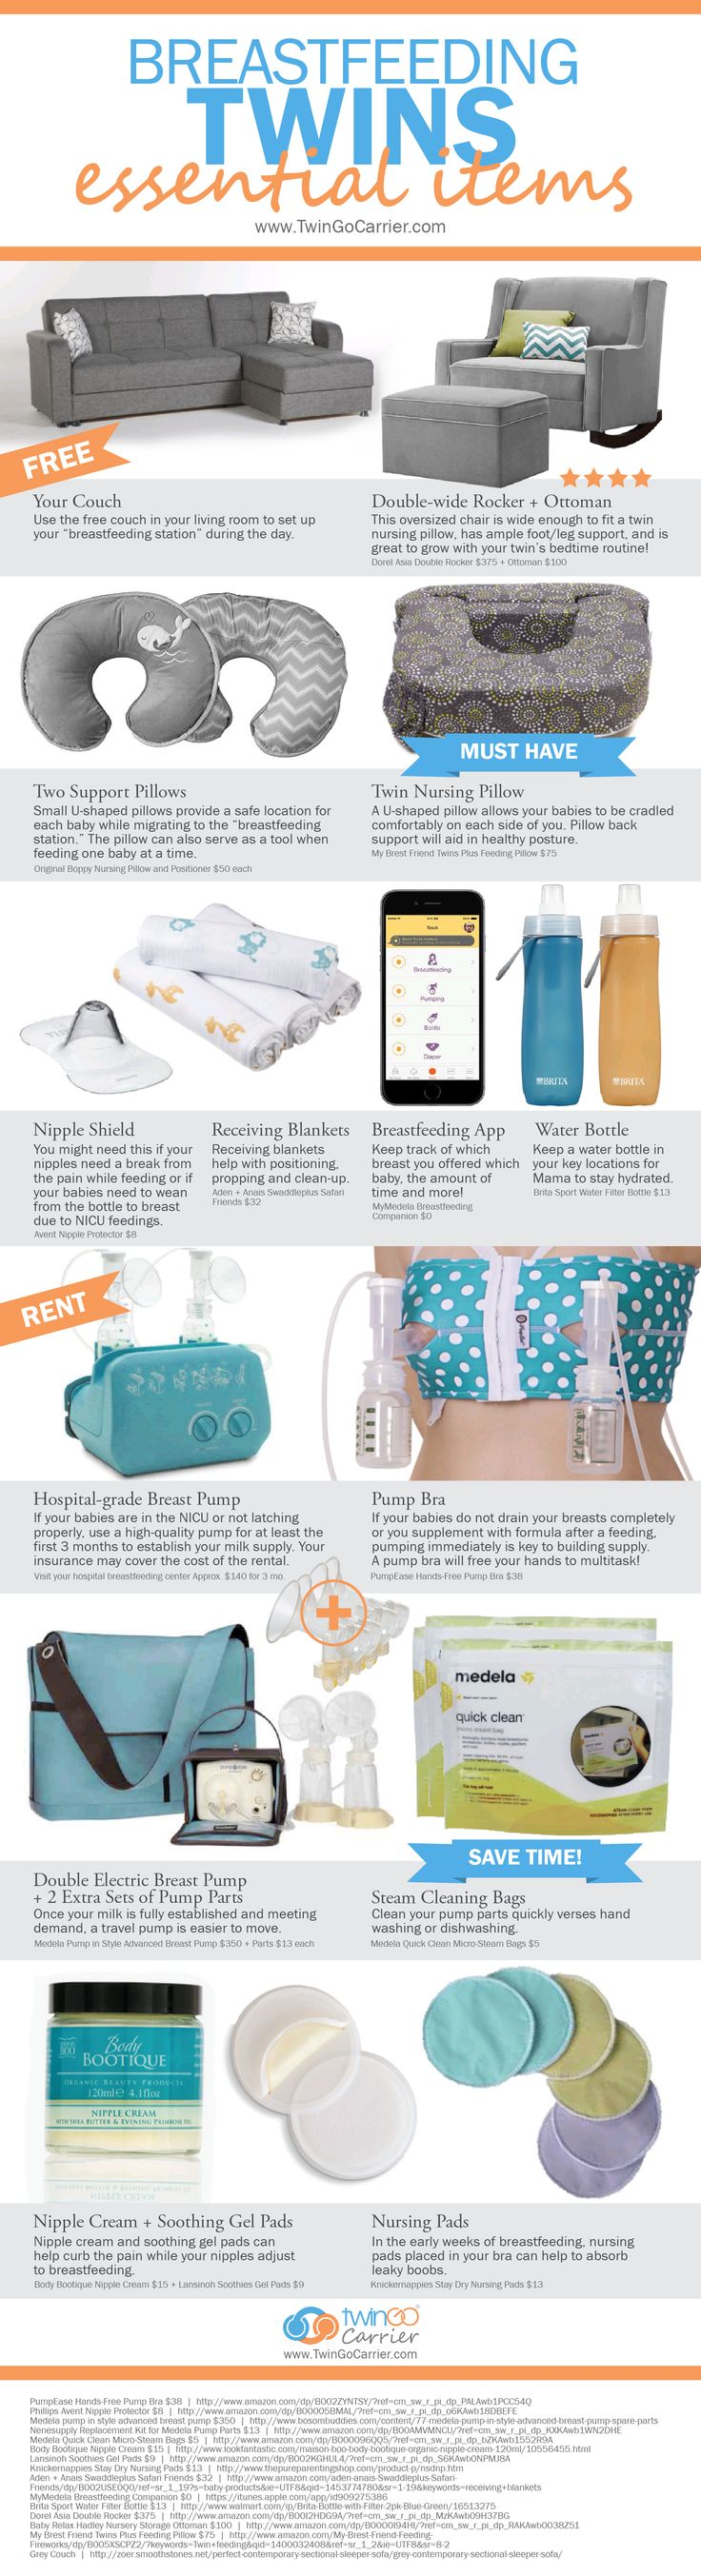 Breastfeeding twins essential items